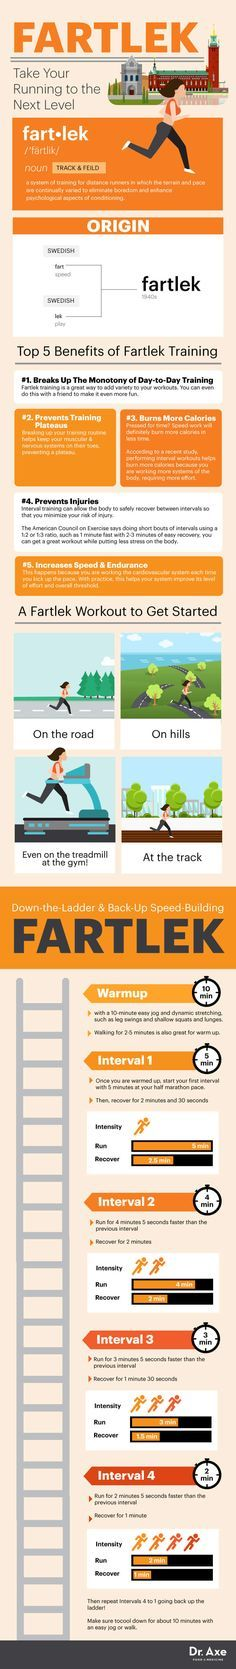 Fartlek: A Swedish Training Trick for Better Running - Dr. Axe